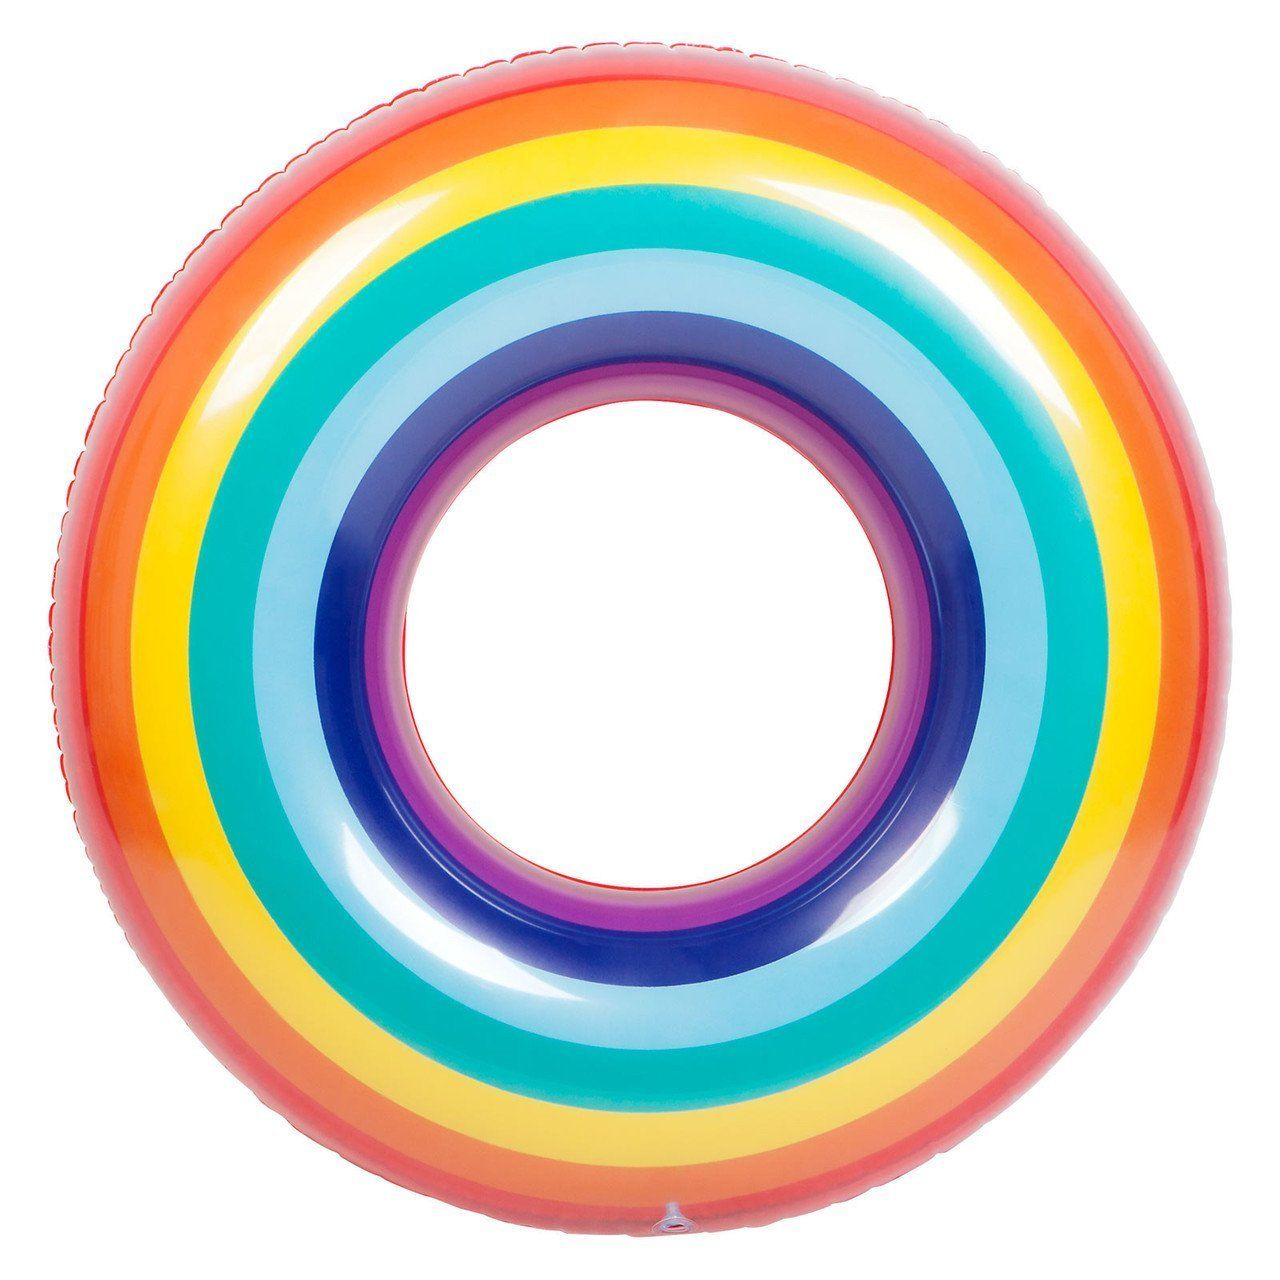 Swimming In A Pool Along With Sunnylife Pool Ring Rainbow Increases The Joy Of Swimming With This Rainbow Pools Inflatable Pool Floats Pool Floats For Adults